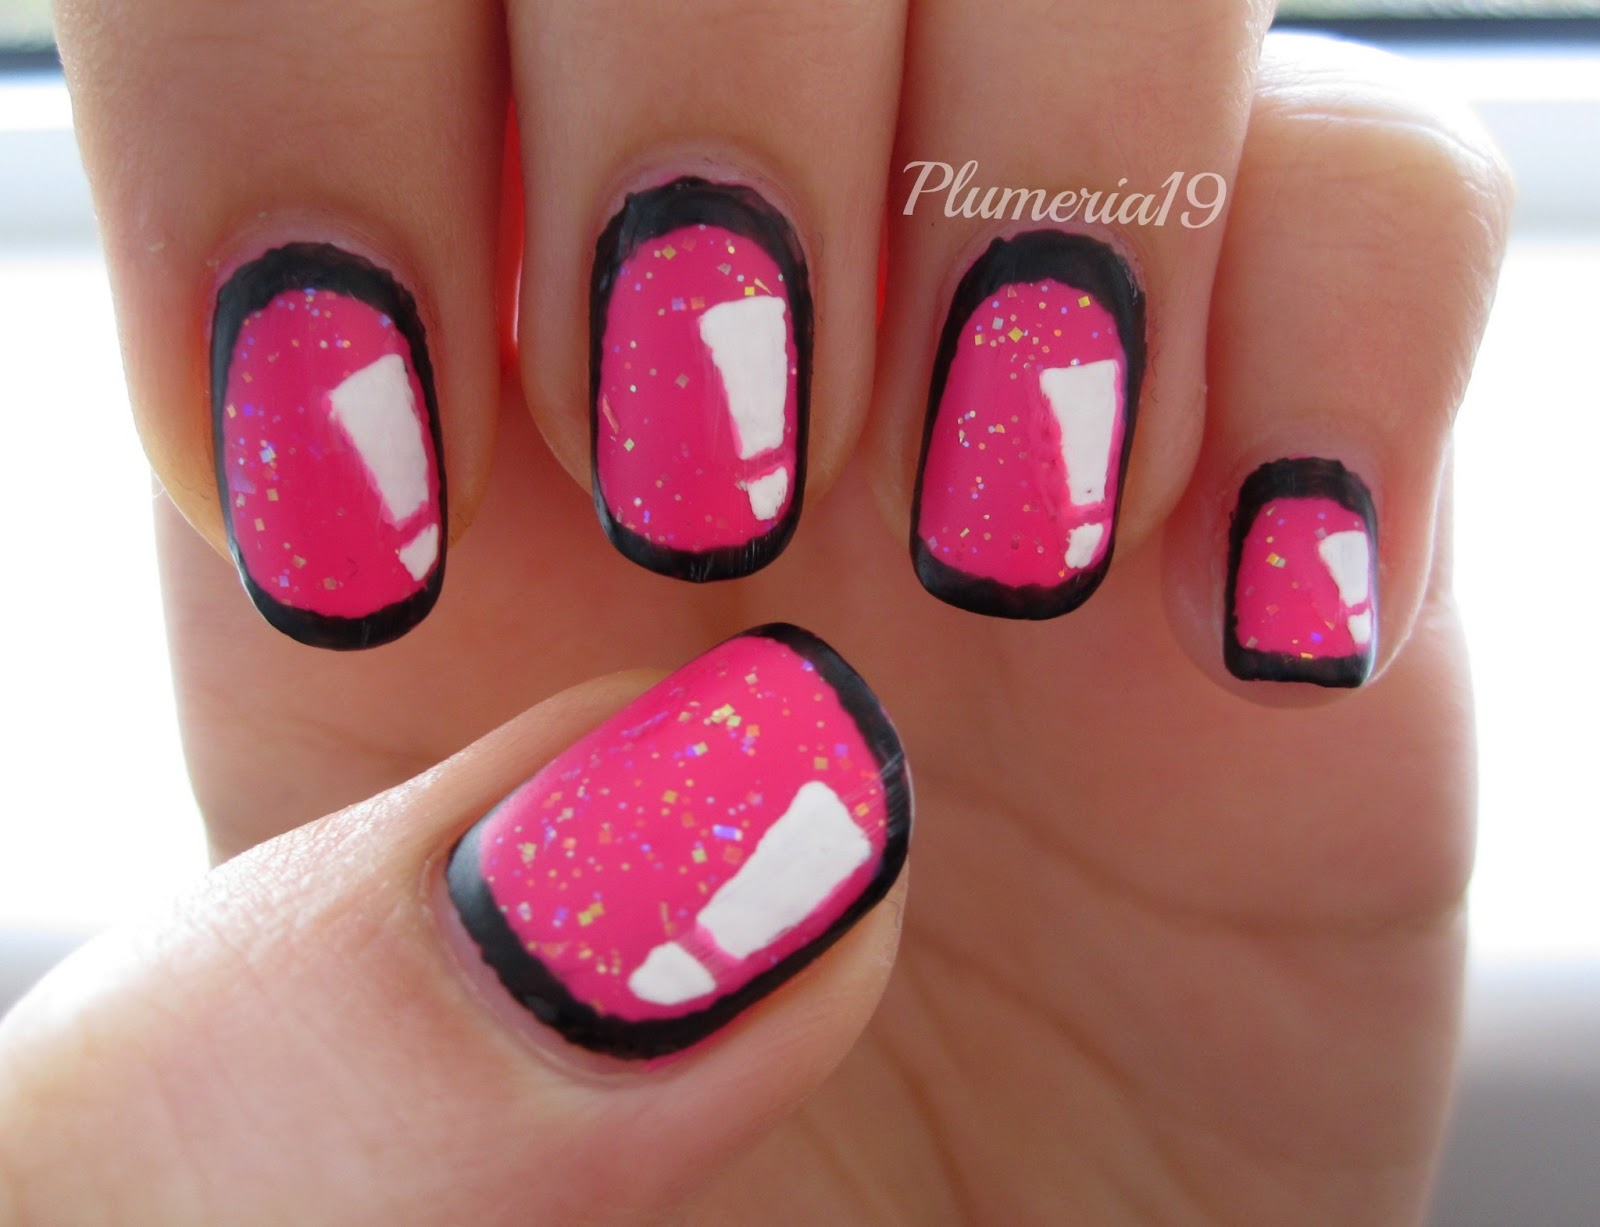 Plumeriapainted Pop Out Nails